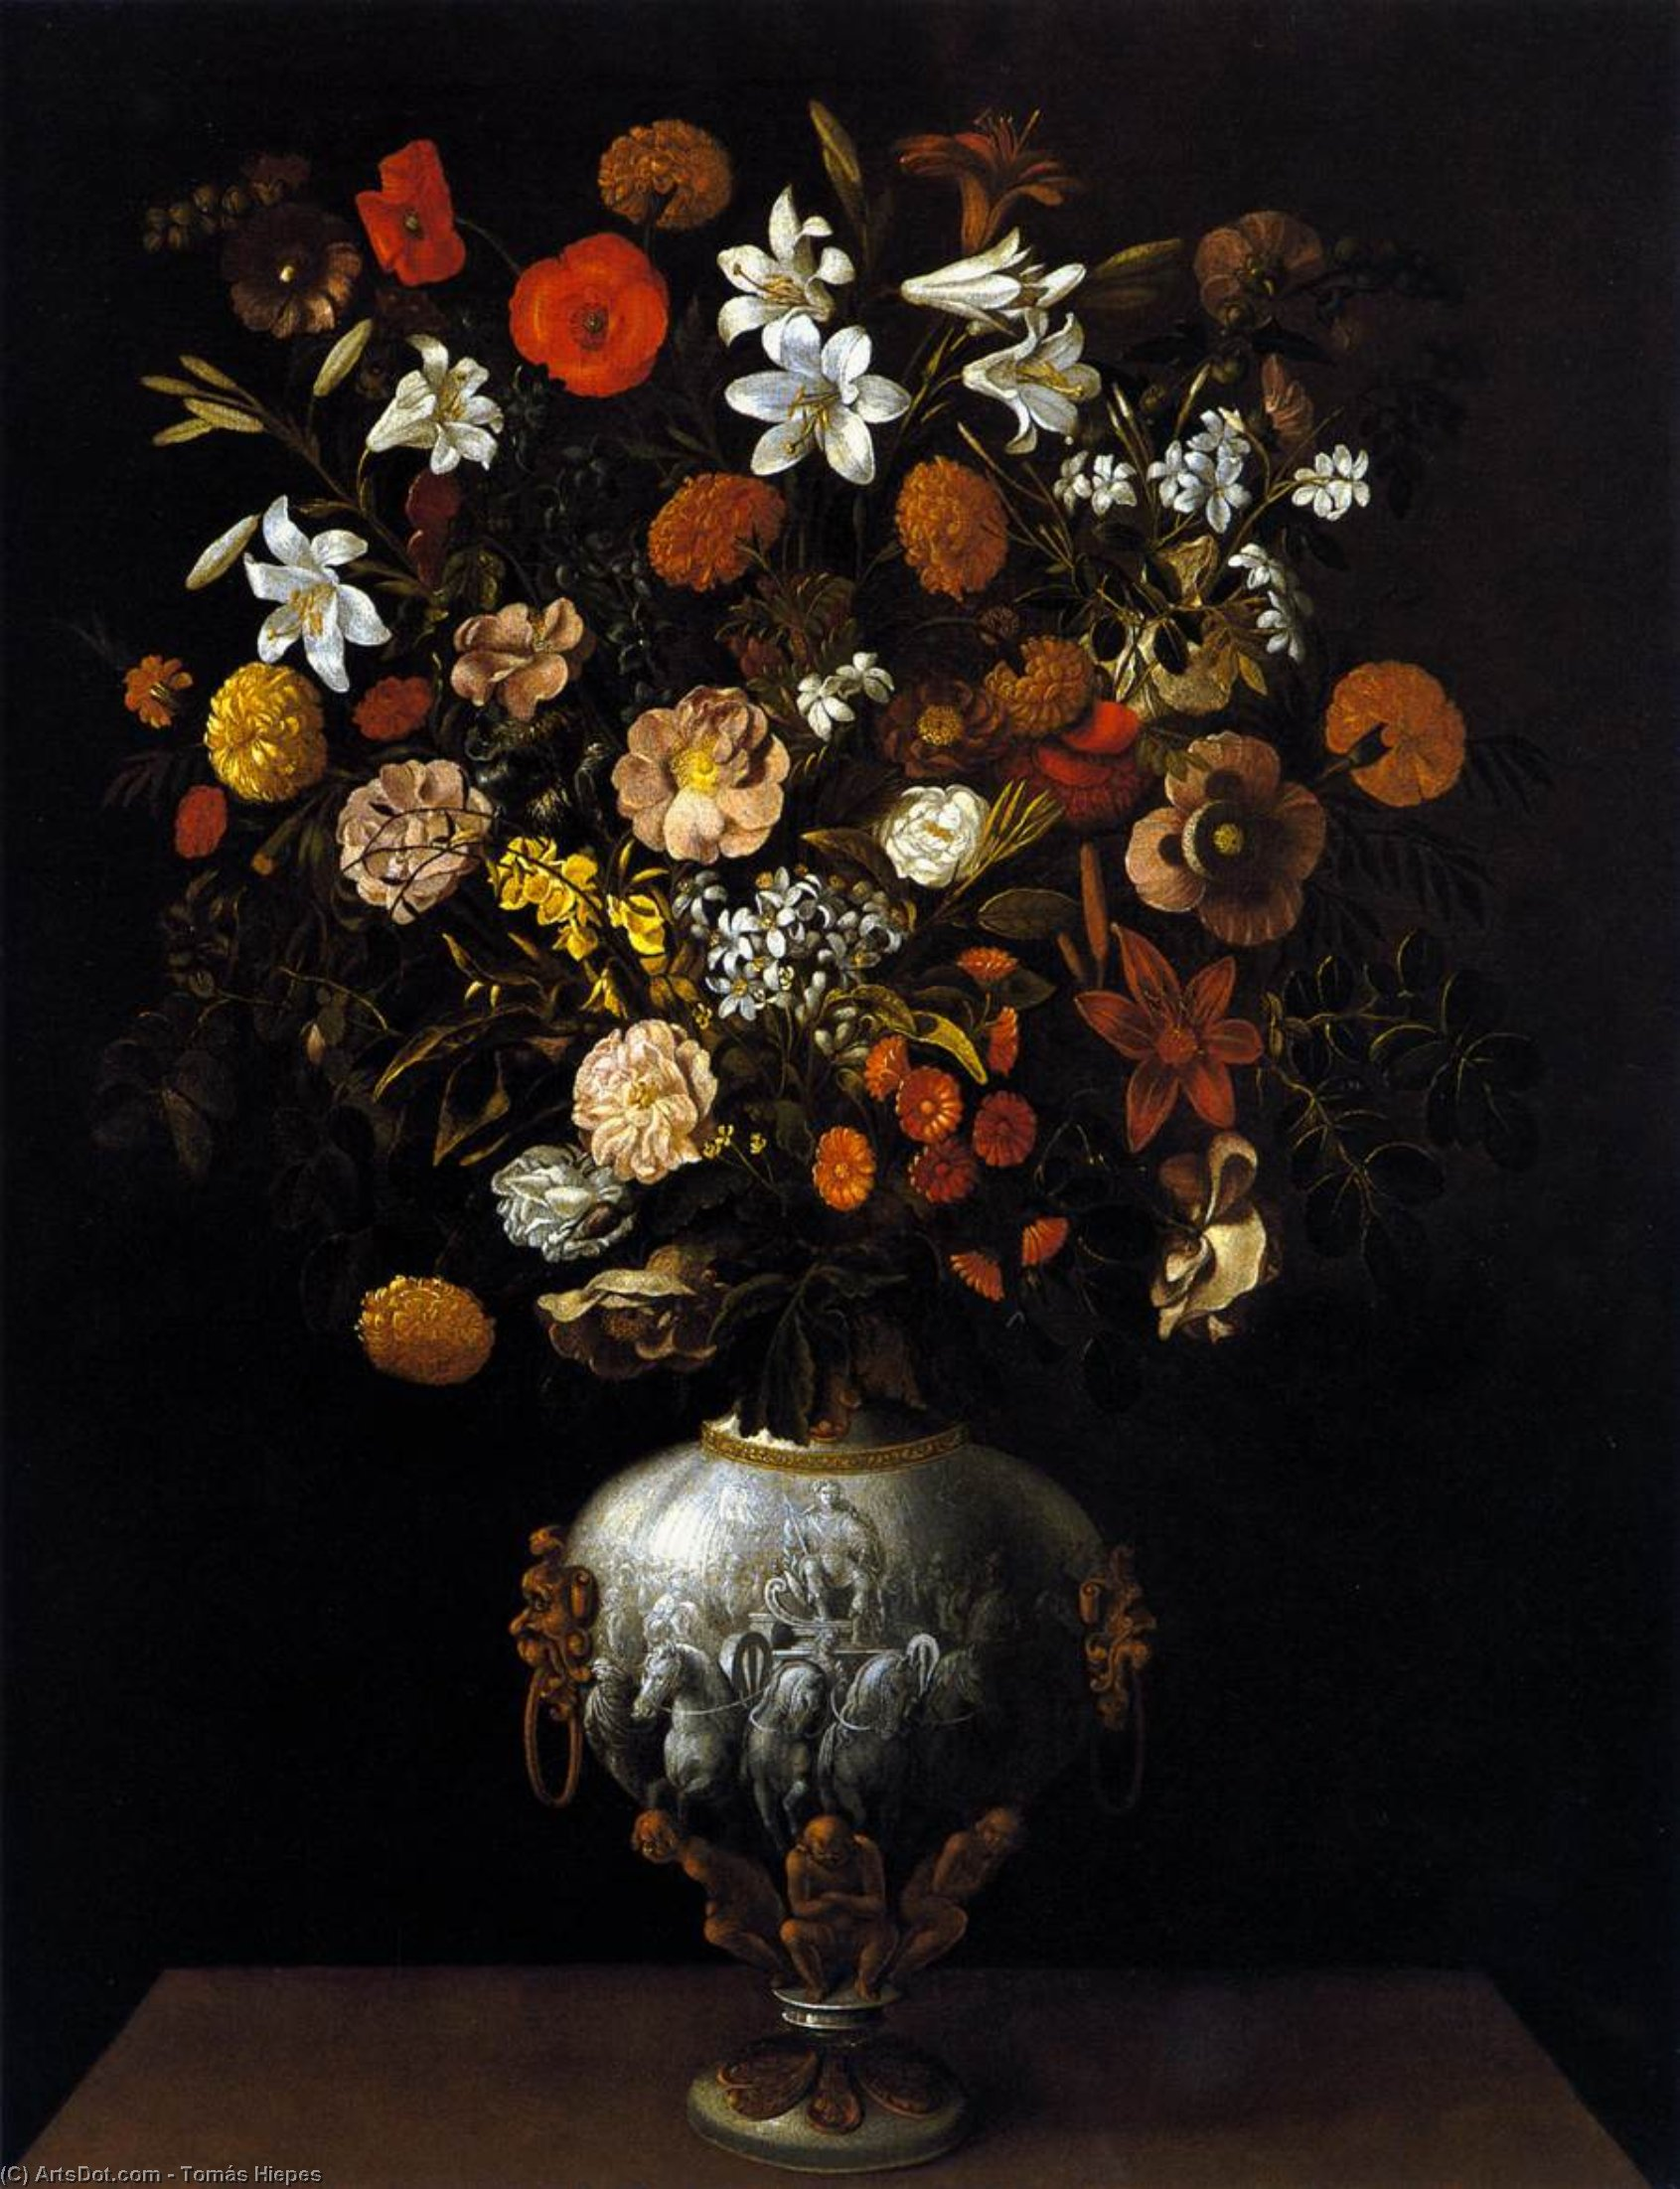 Buy Museum Art Reproductions : Vase of Flowers, 1646 by Tomàs Yepes (1595-1674) | ArtsDot.com